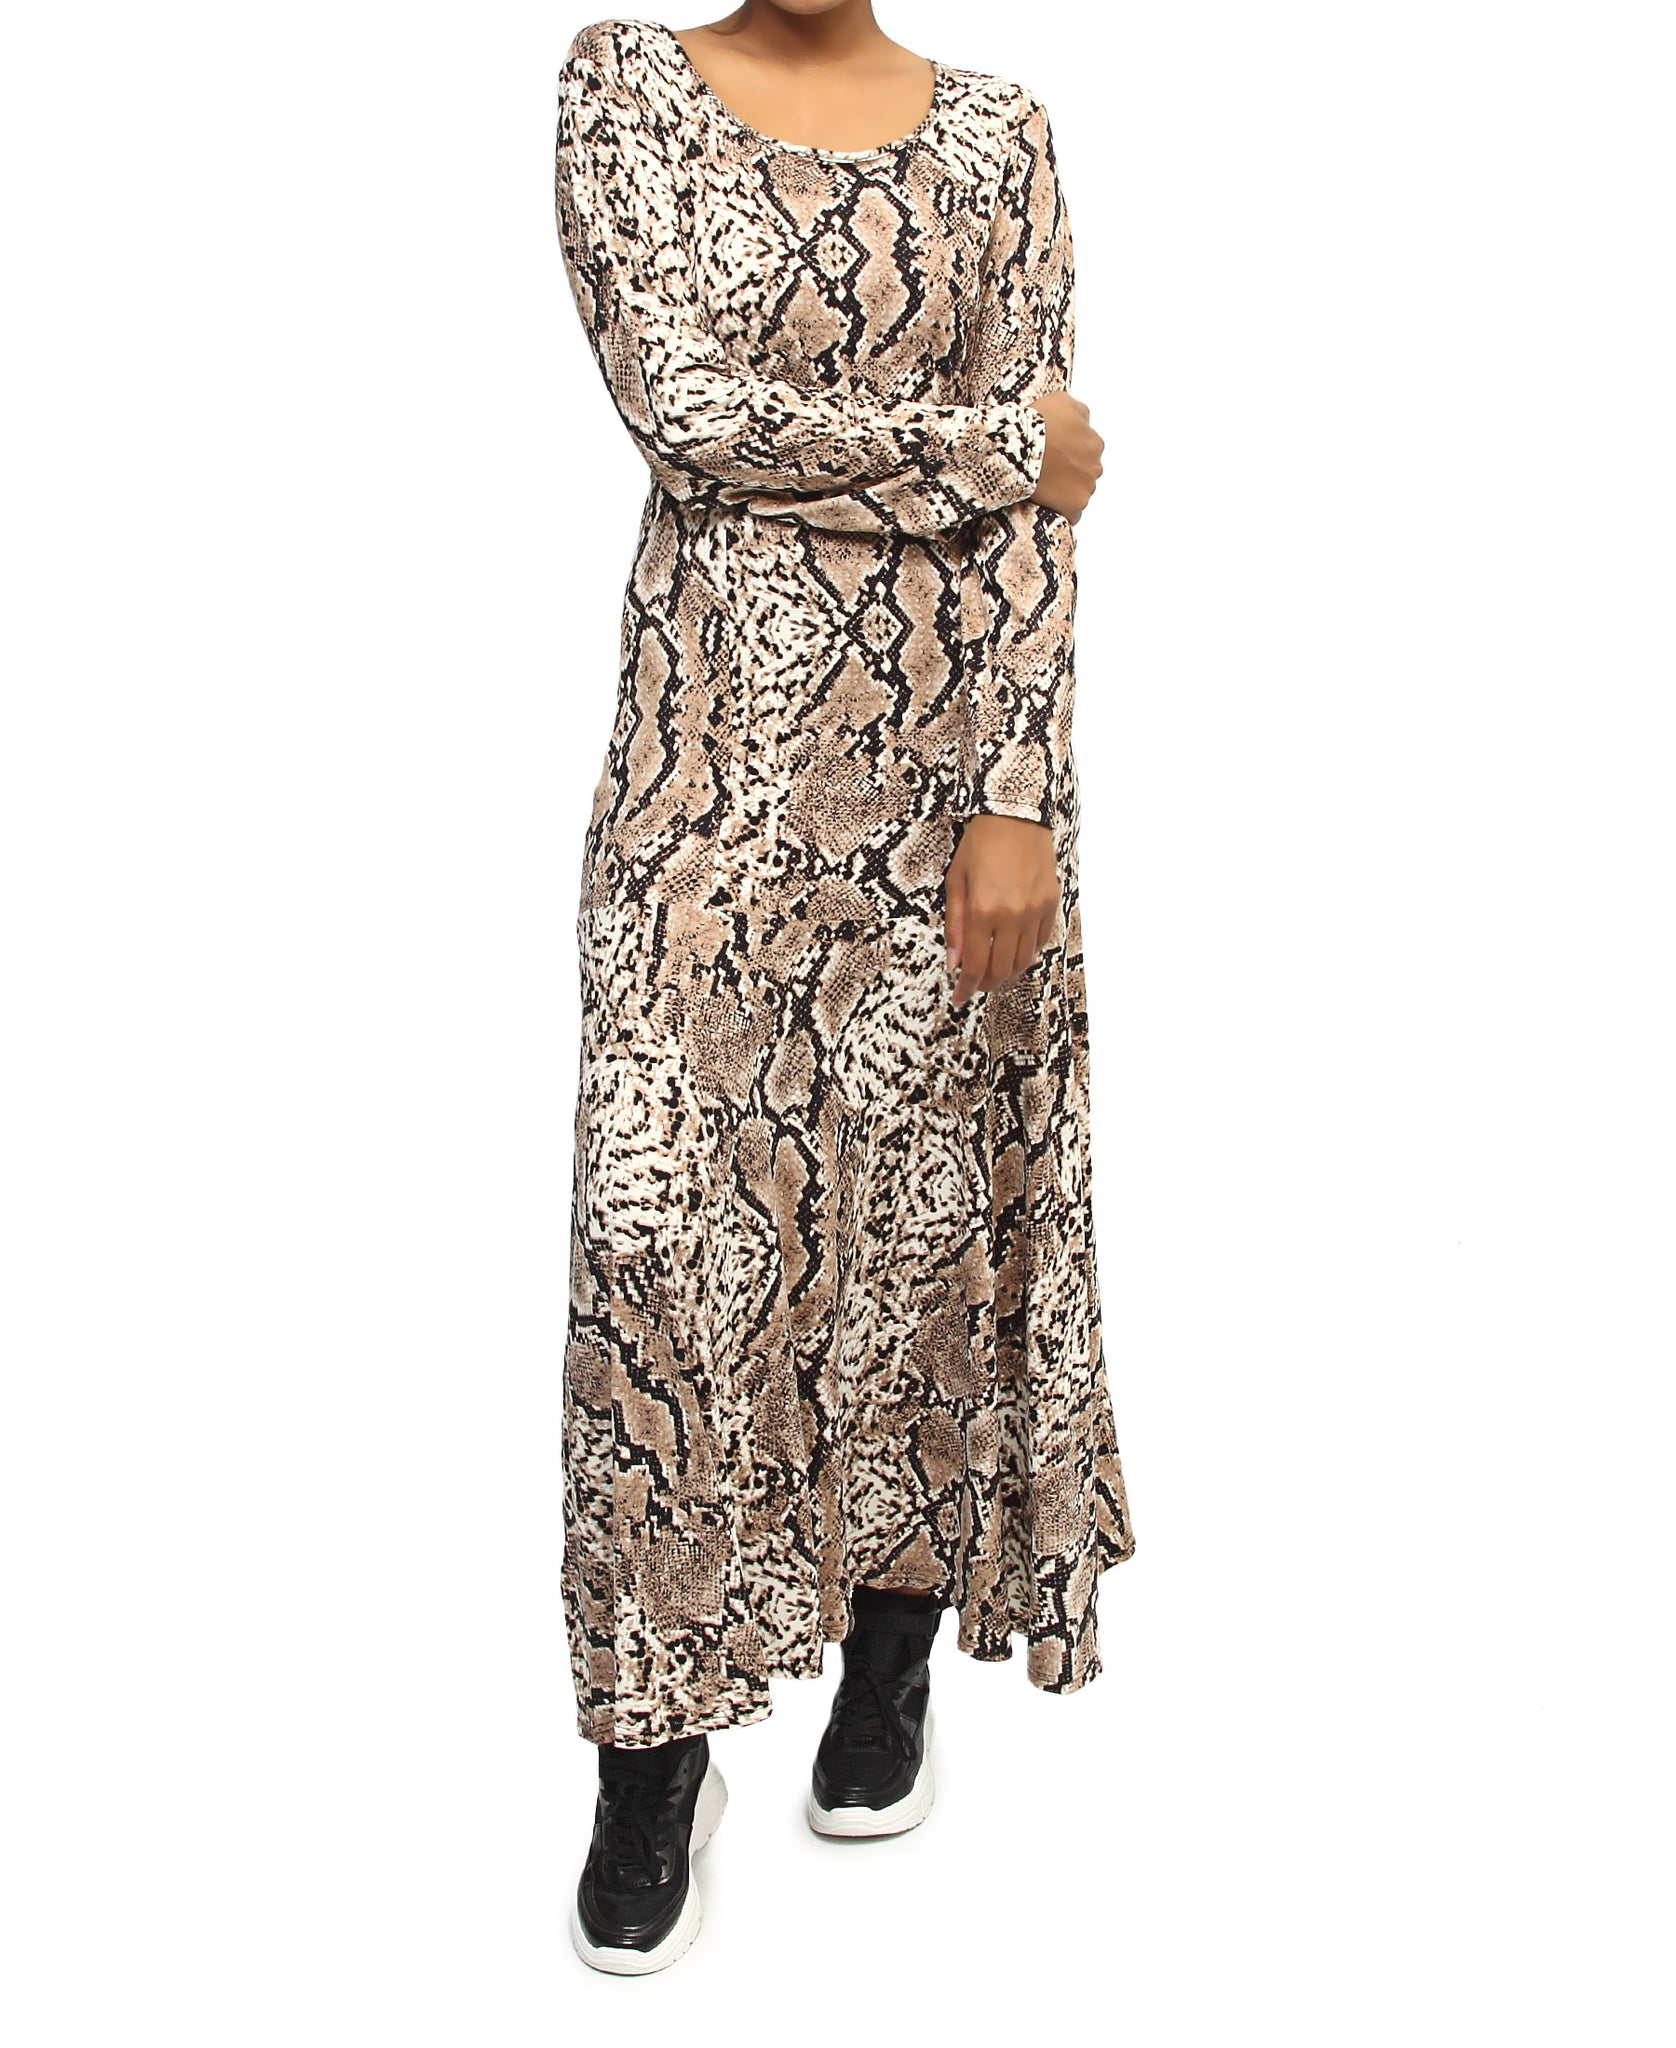 Long Sleeve Maxi Dress - Brown